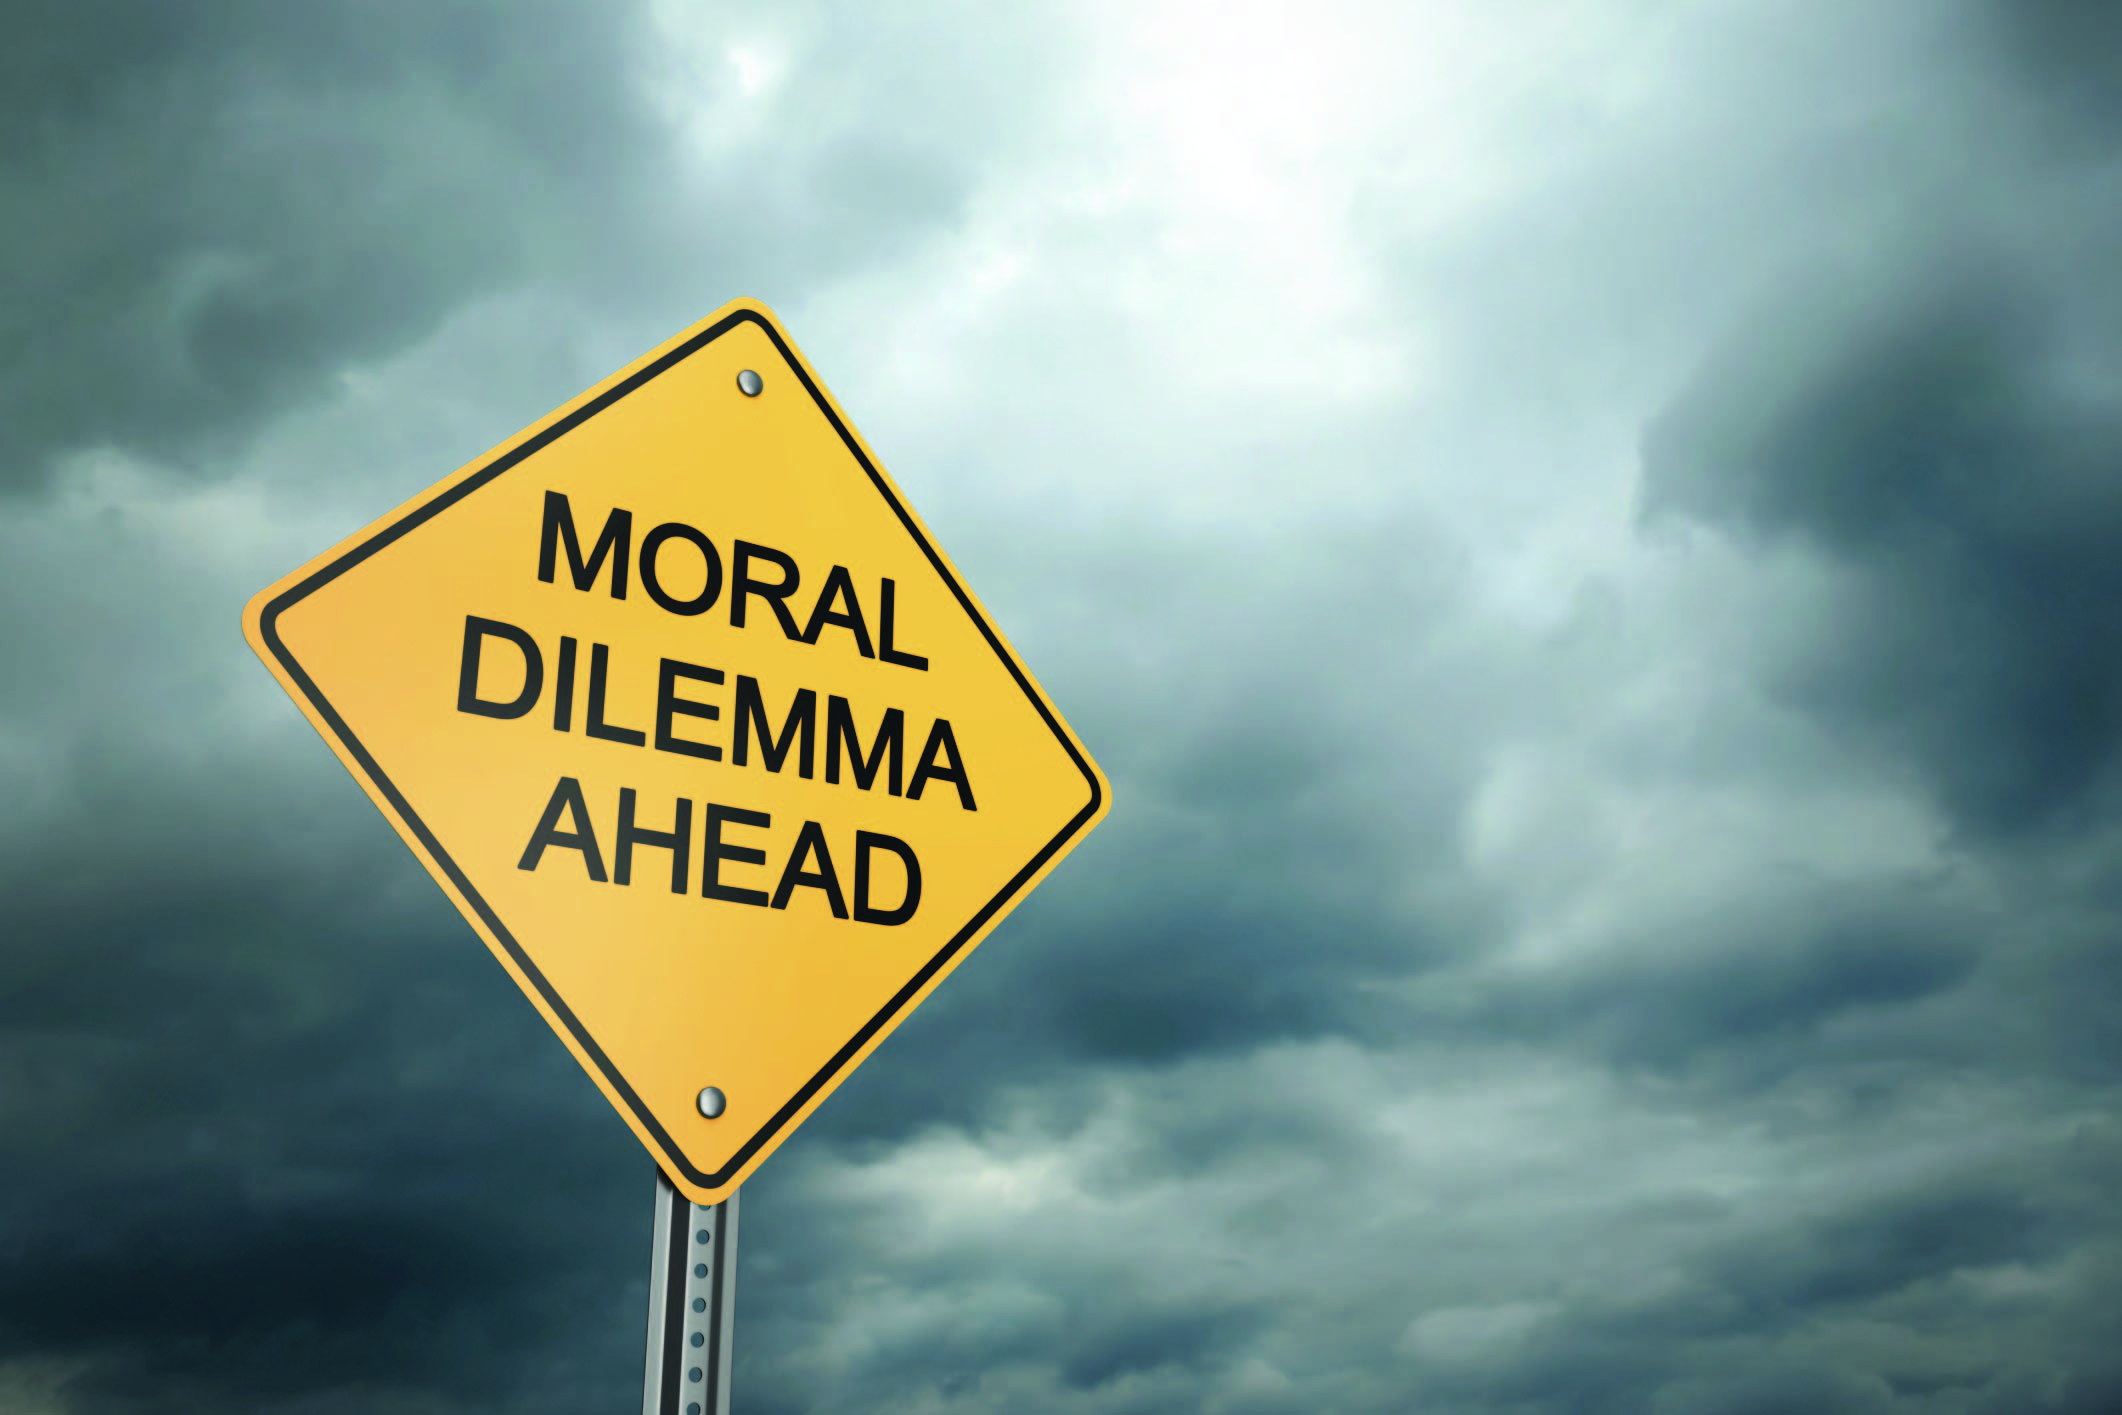 What Makes A Political Issue Moral Center For